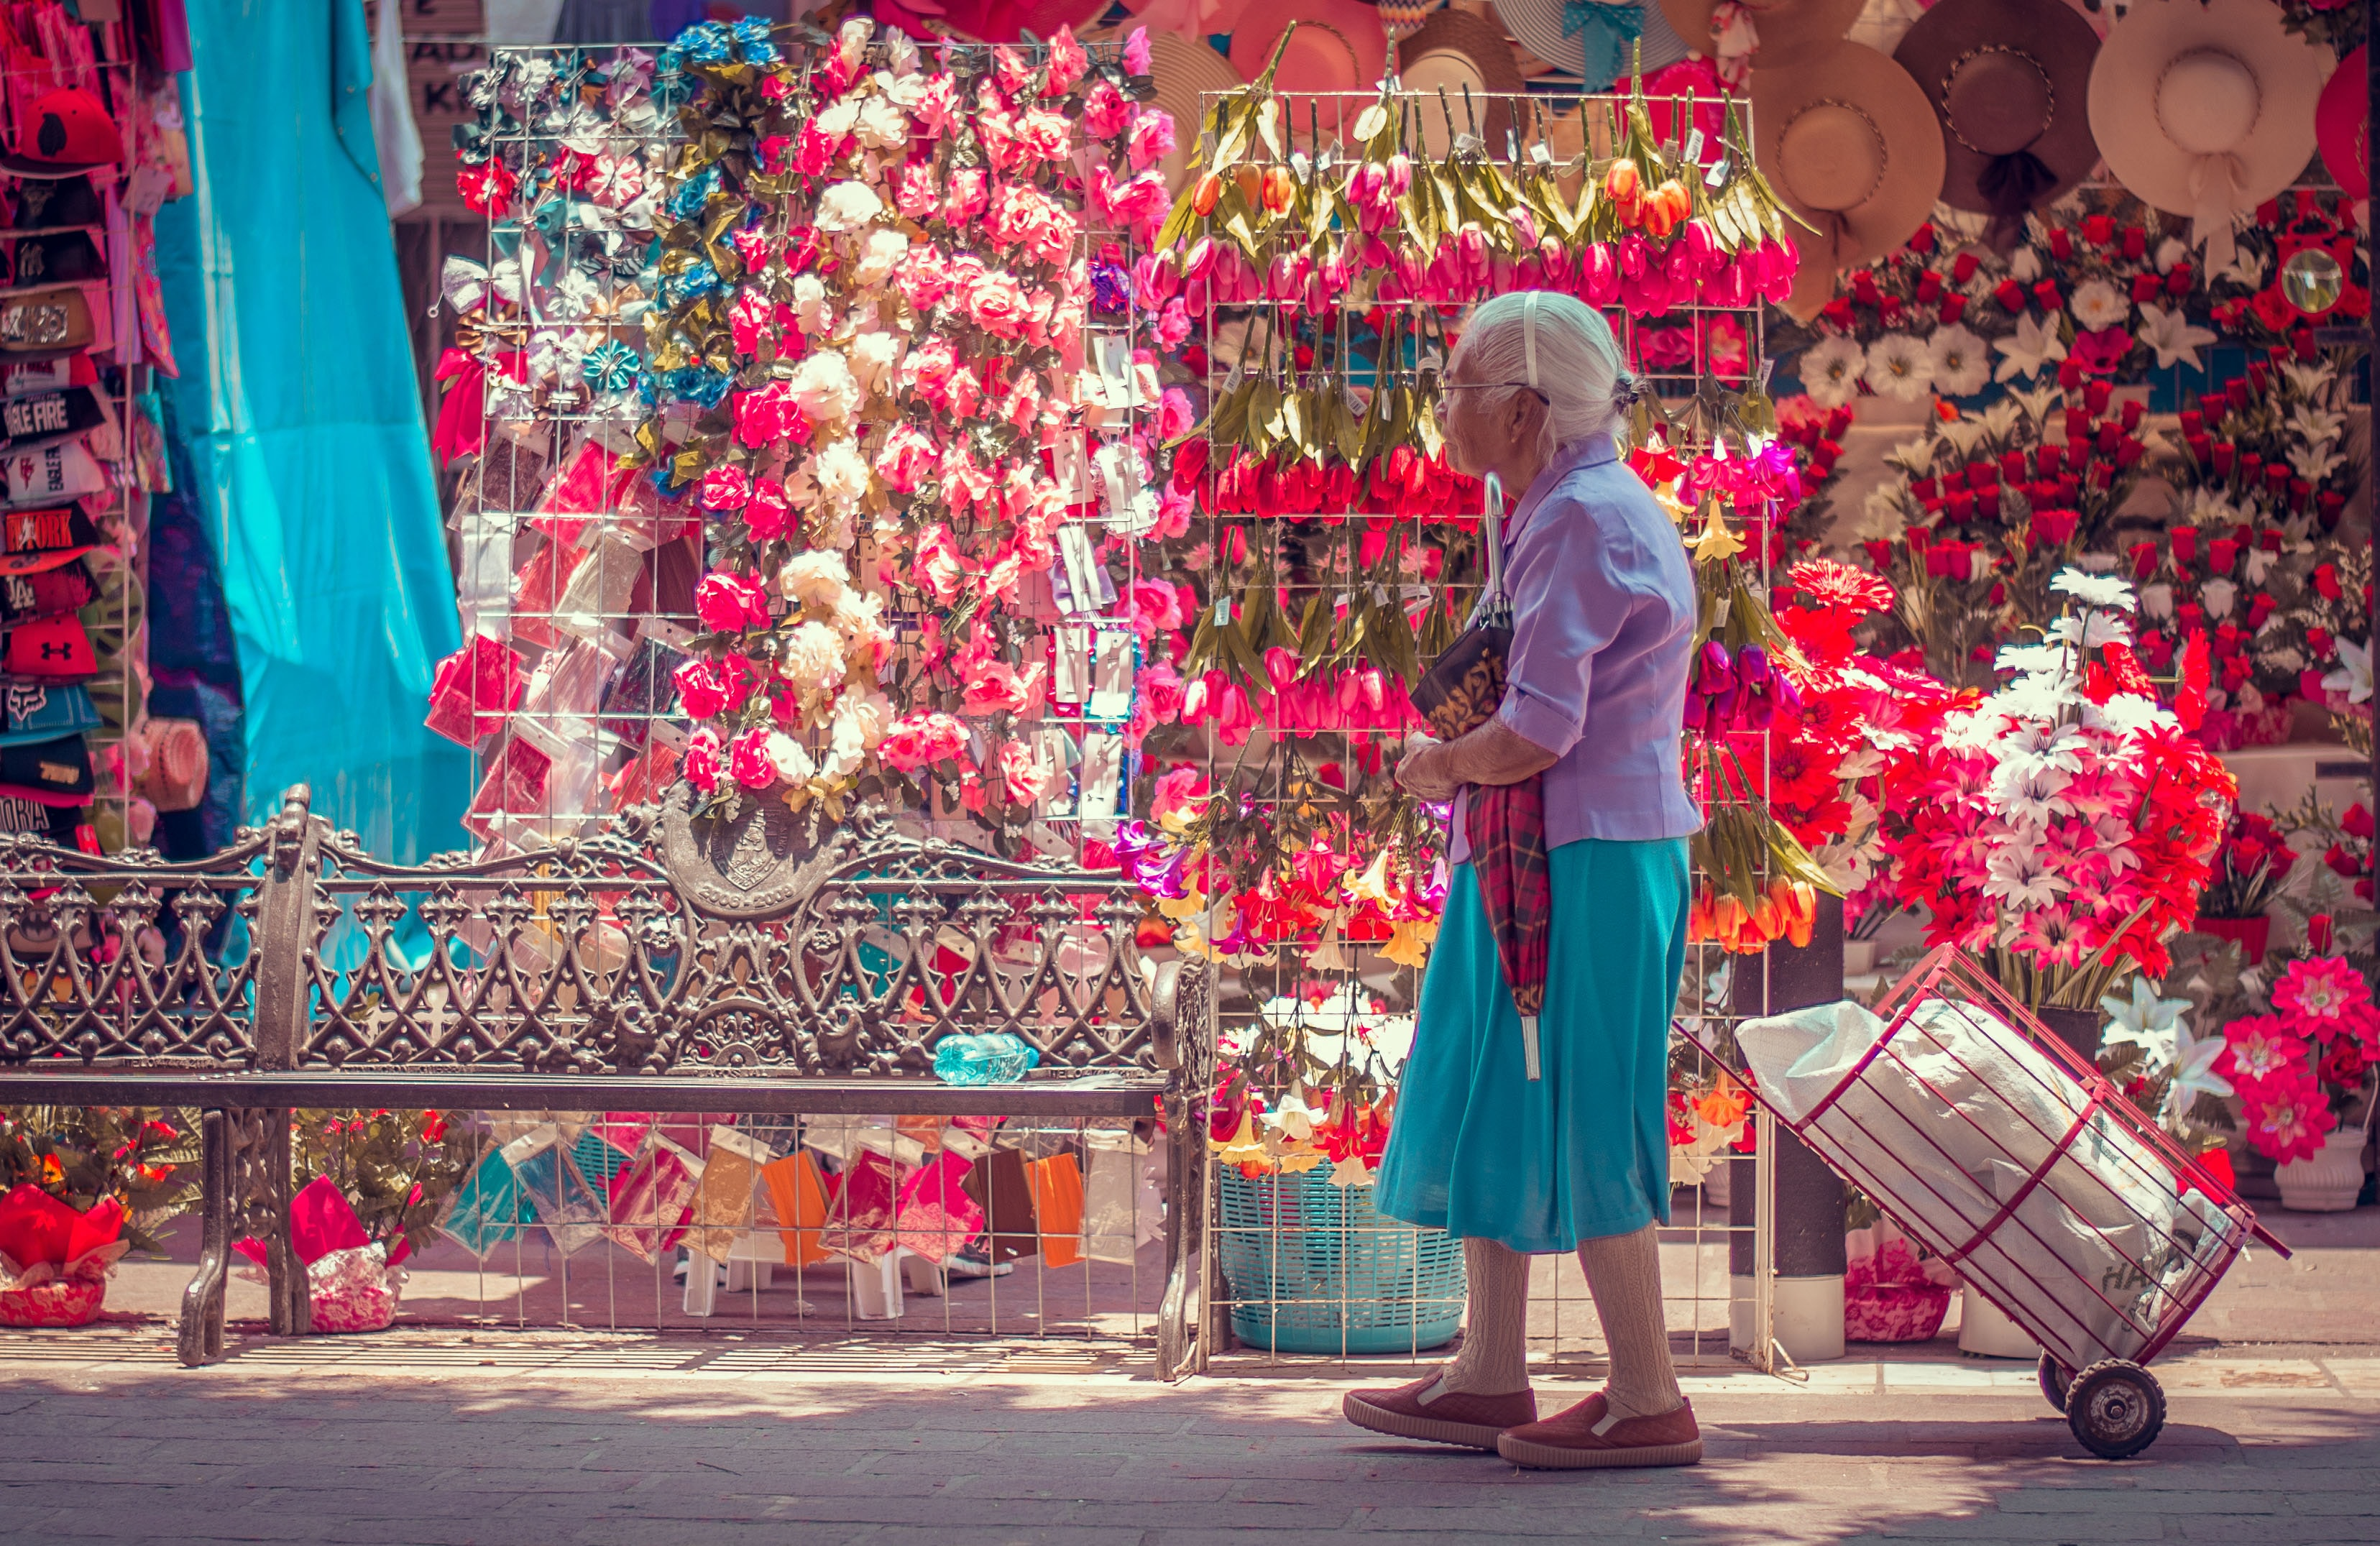 An older Asian woman with white hair pulling her cart along a flower vendor.